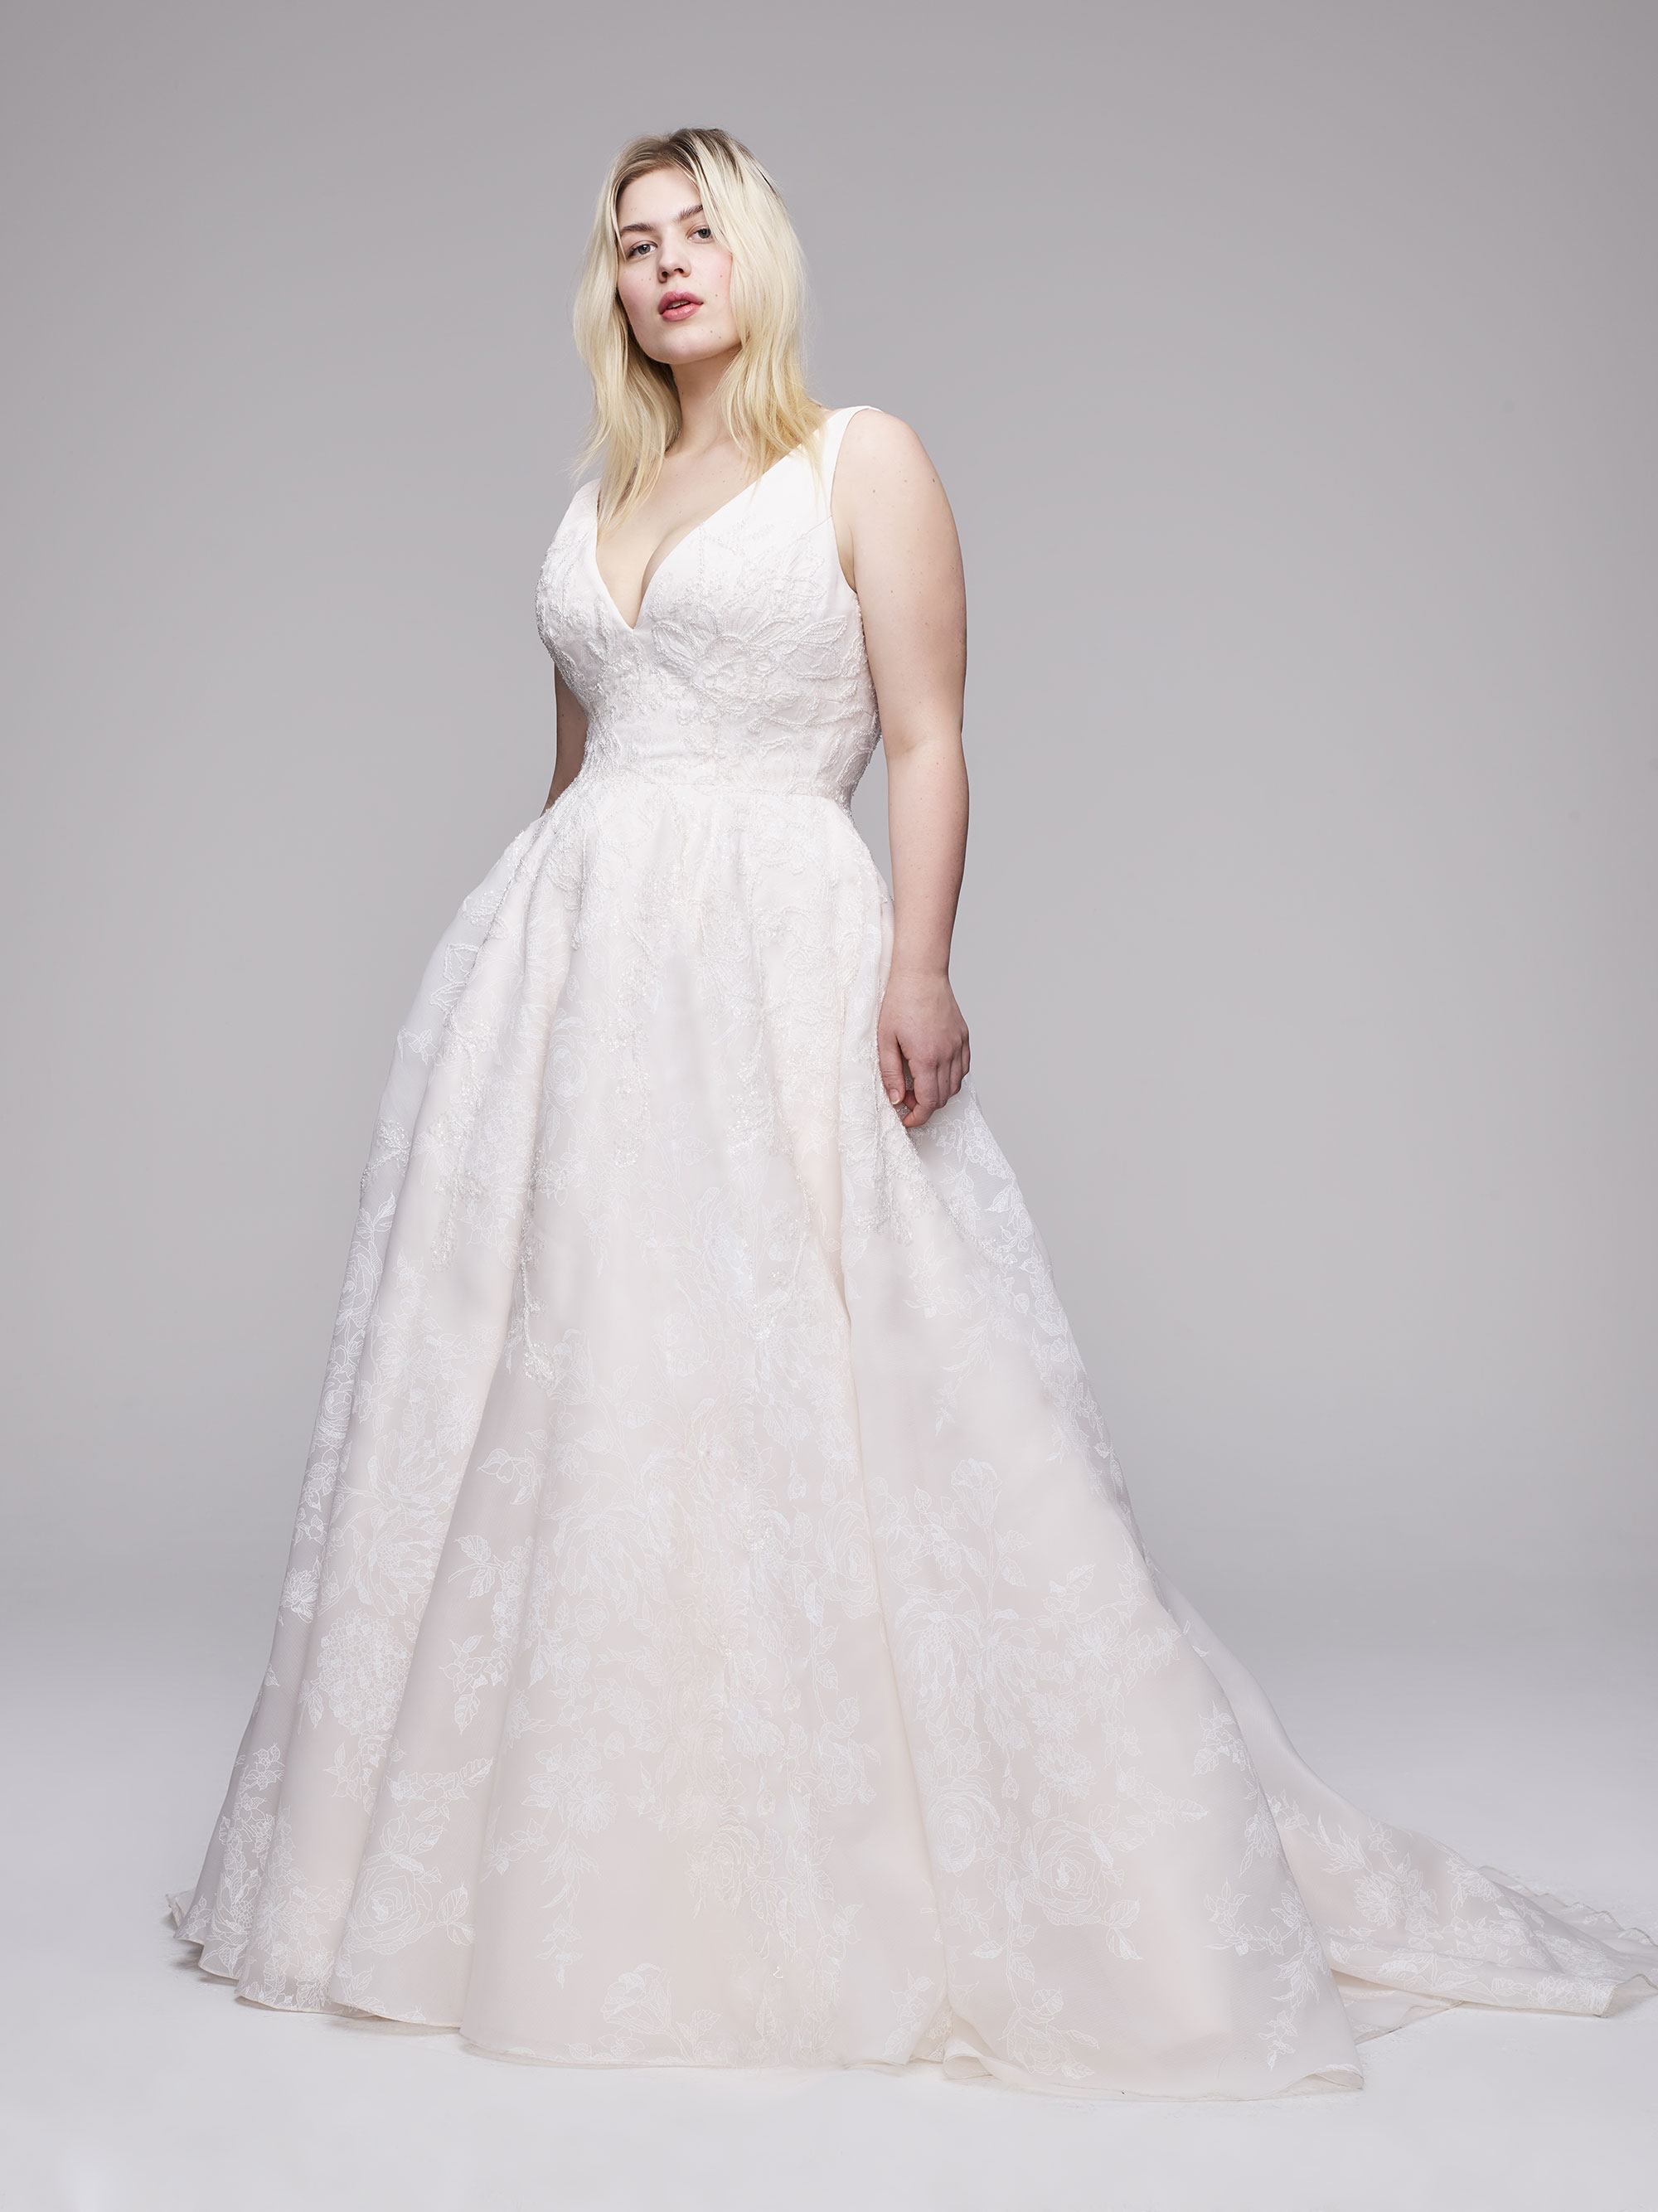 The Lupita Plus Size Wedding Gown from Curve Couture by Anne Barge